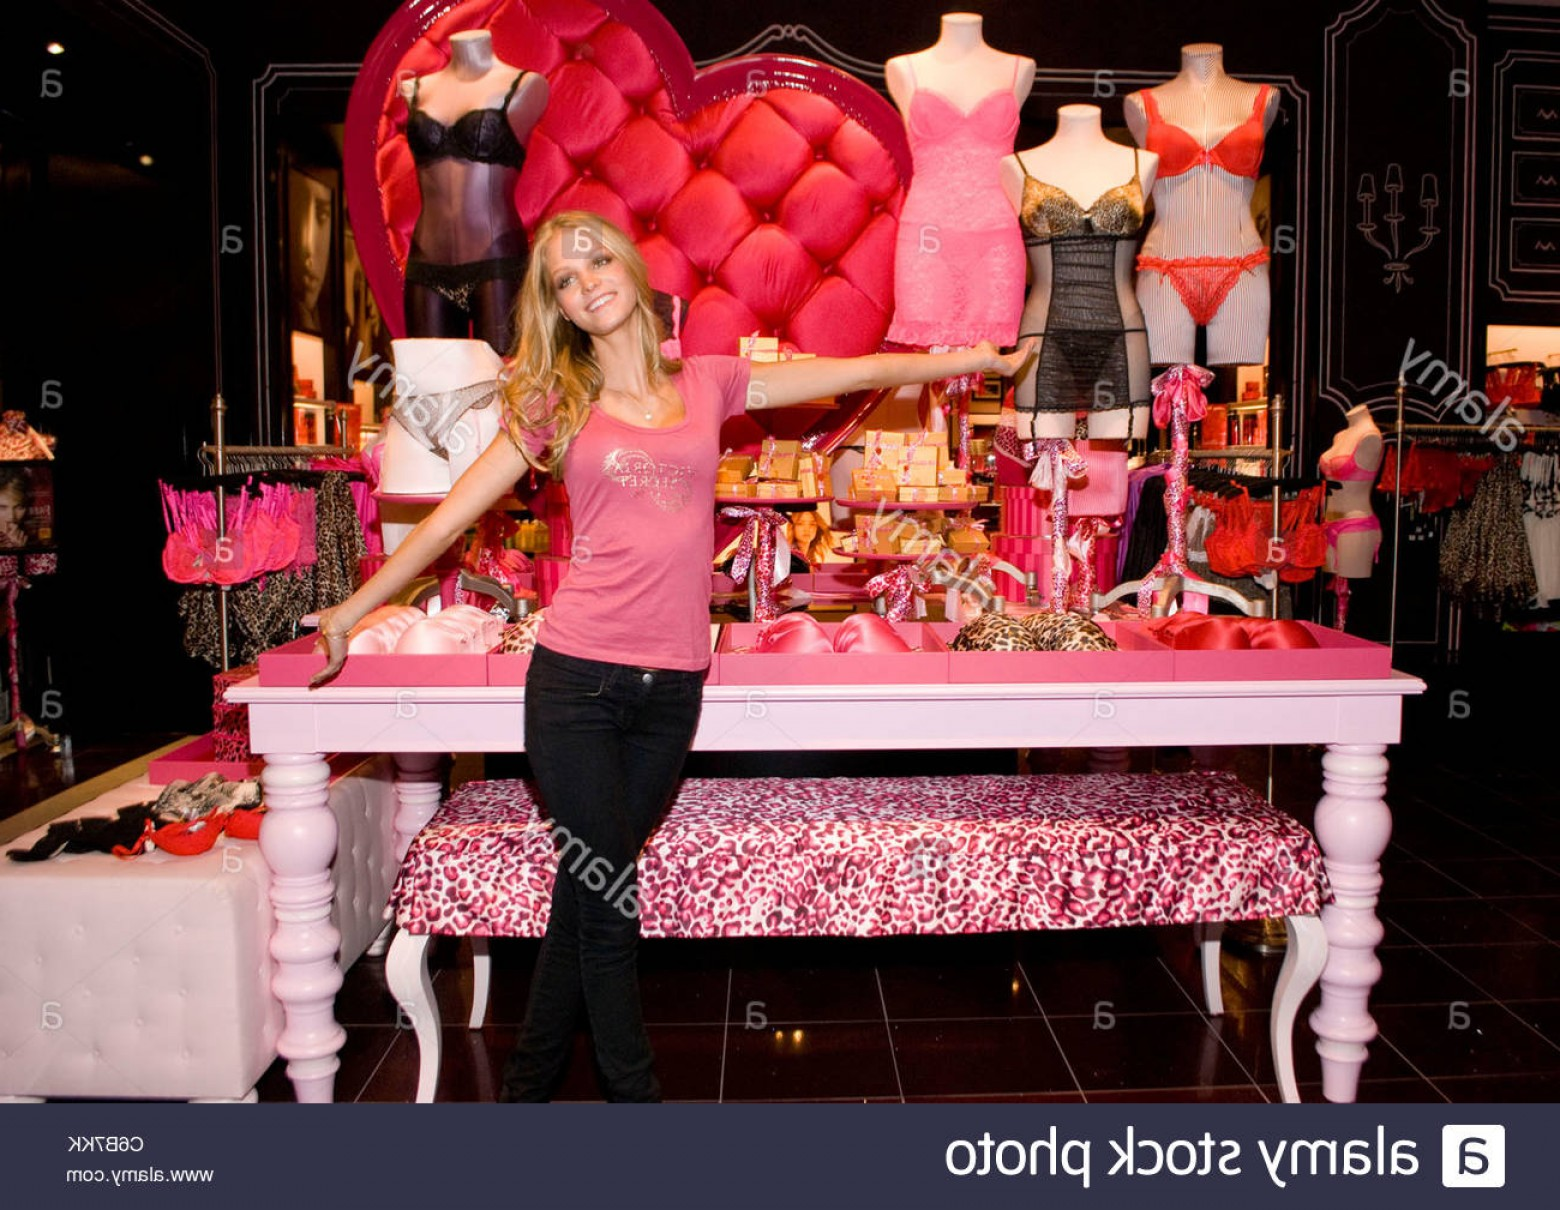 Victoria's Secret Pink Vector: Stock Photo Erin Heatherton The Victorias Secret Bombshell Shares Valentines Gift